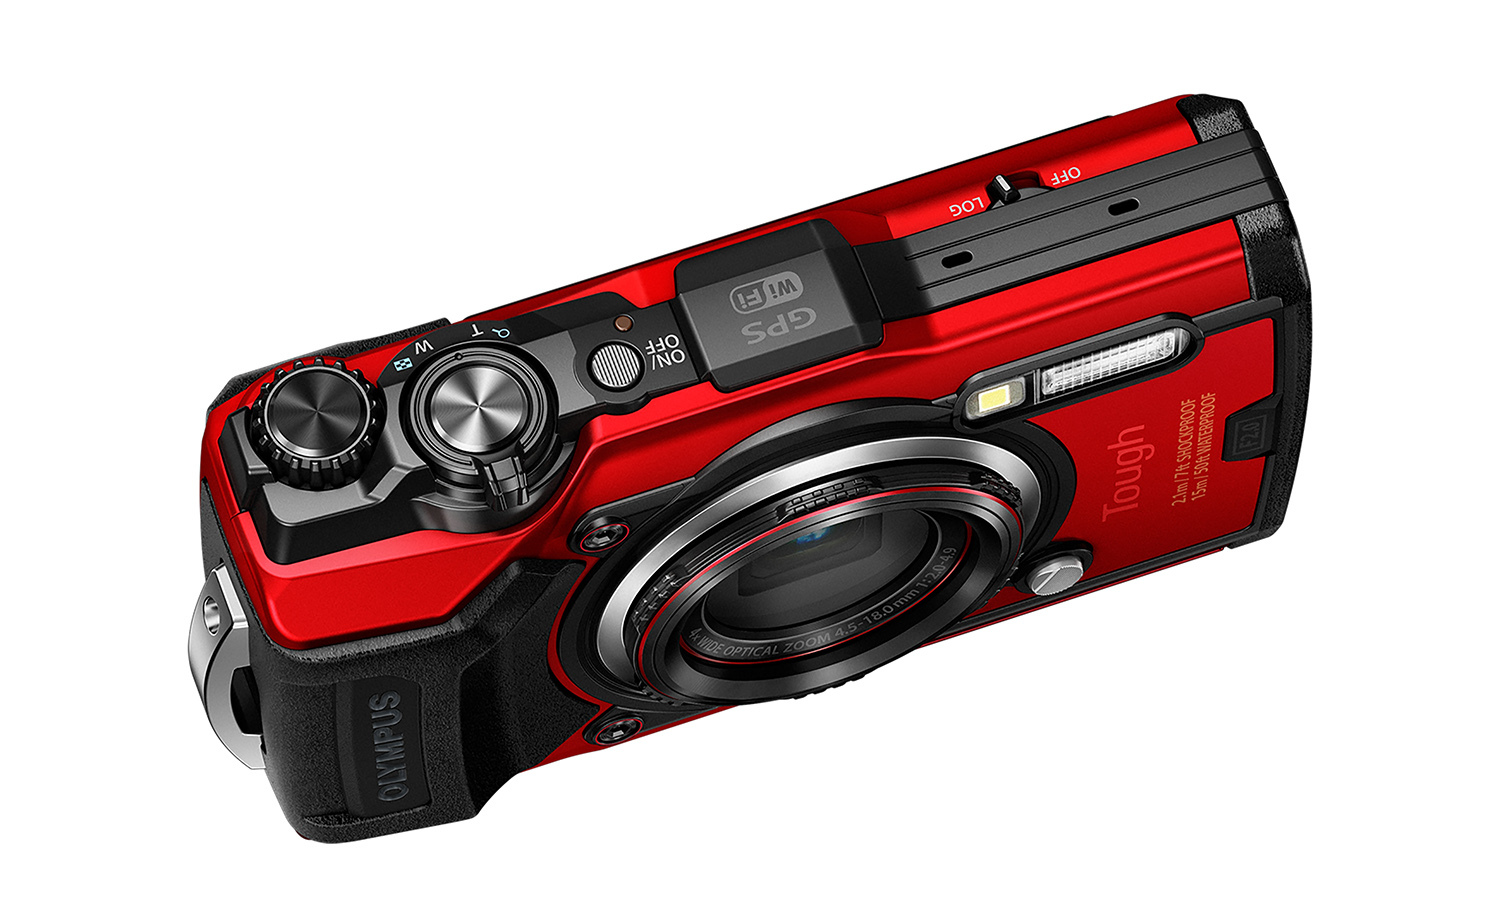 3_Tough_TG-6_red__ProductAdd_001.jpg